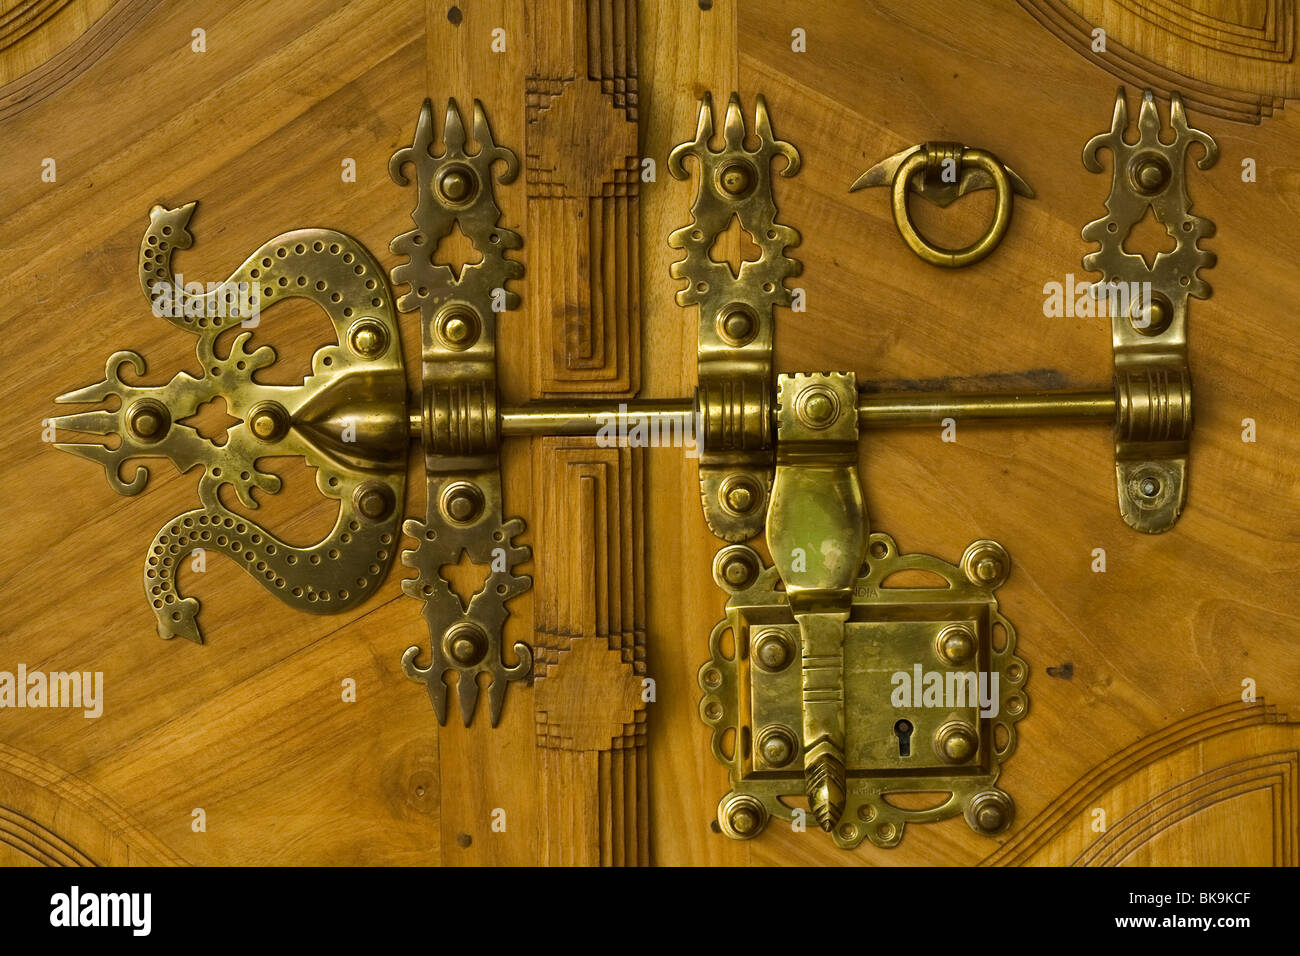 Antique traditional brass door latch and lock on wooden doors common in  kerala india locally known as manichithrathazhu - Antique Traditional Brass Door Latch And Lock On Wooden Doors